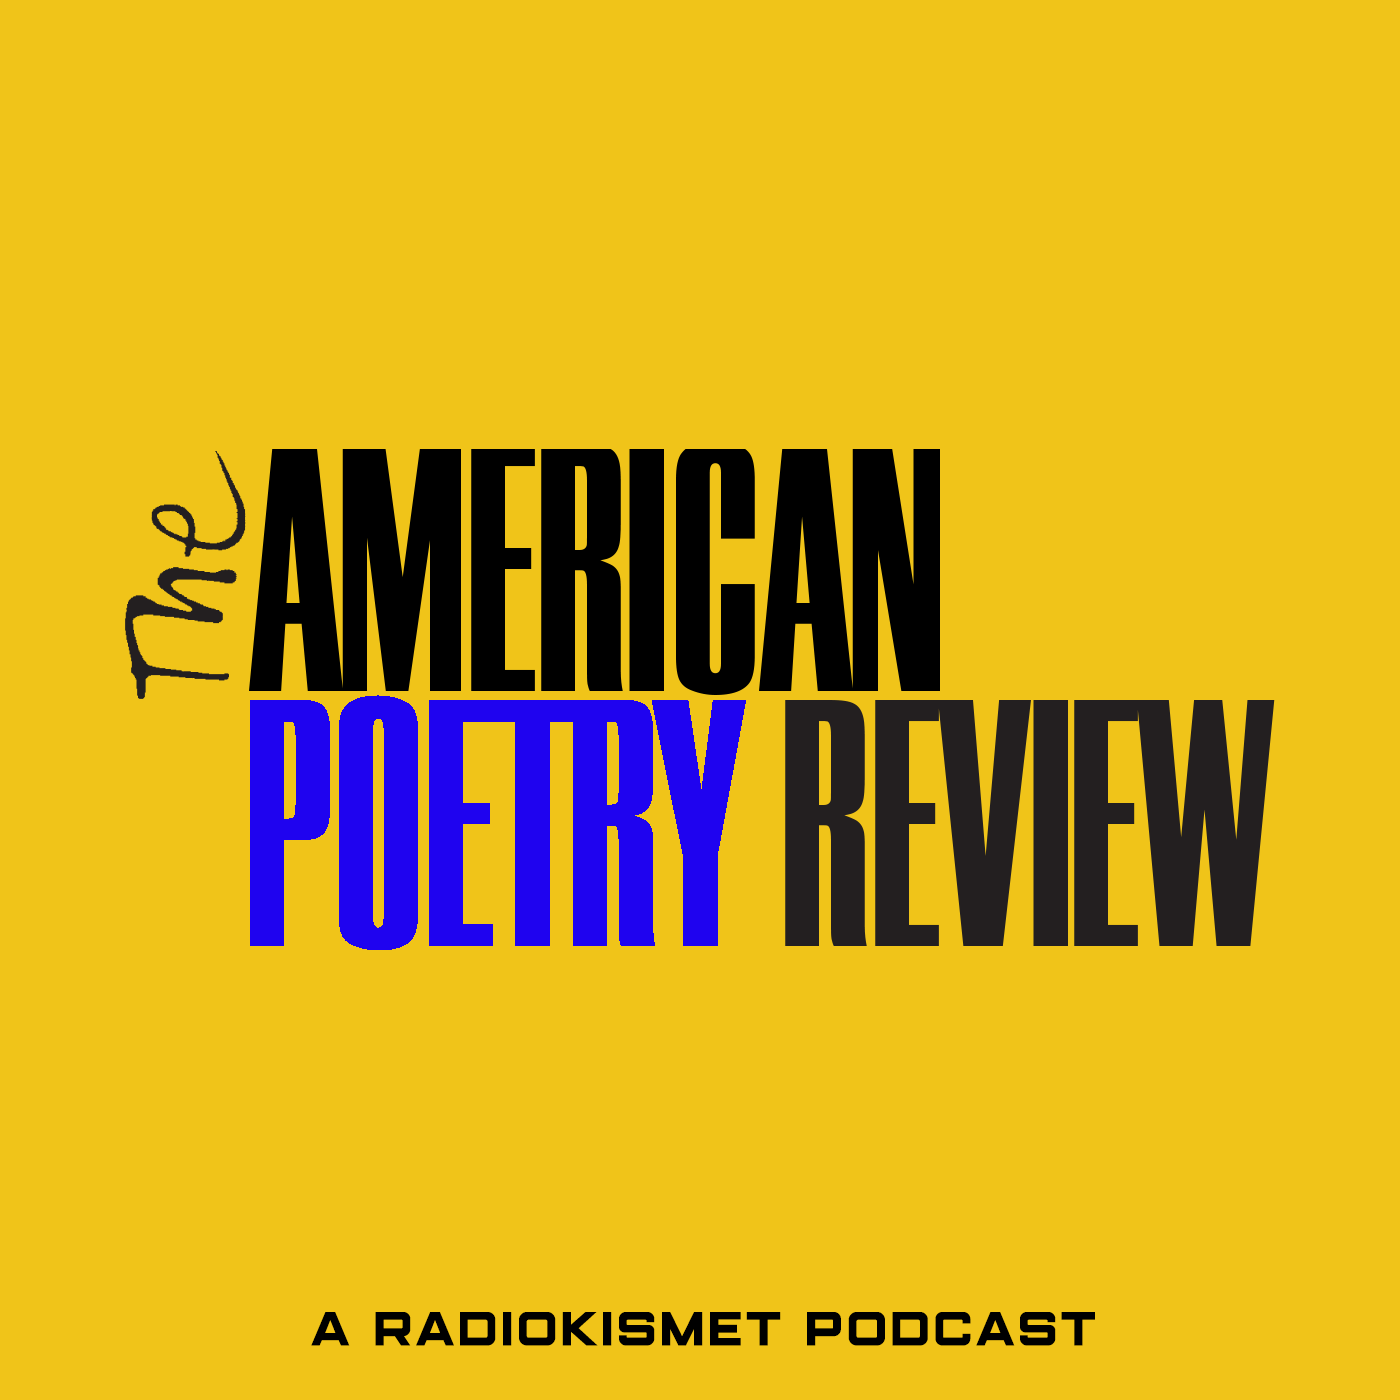 The American Poetry Review Image